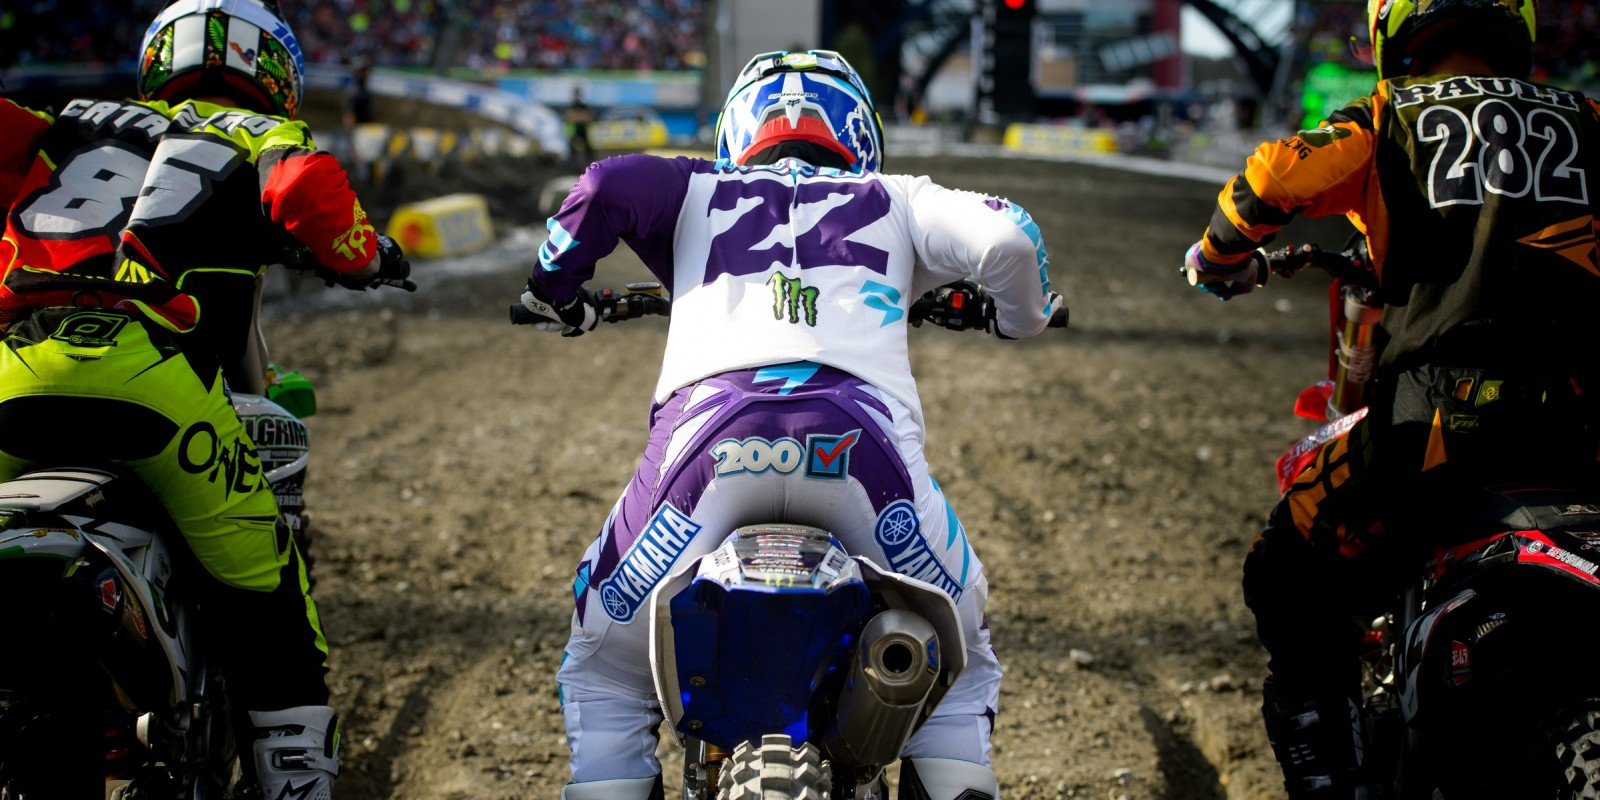 Monster athletes compete in the 2016 Supercross season in Foxborough, MA